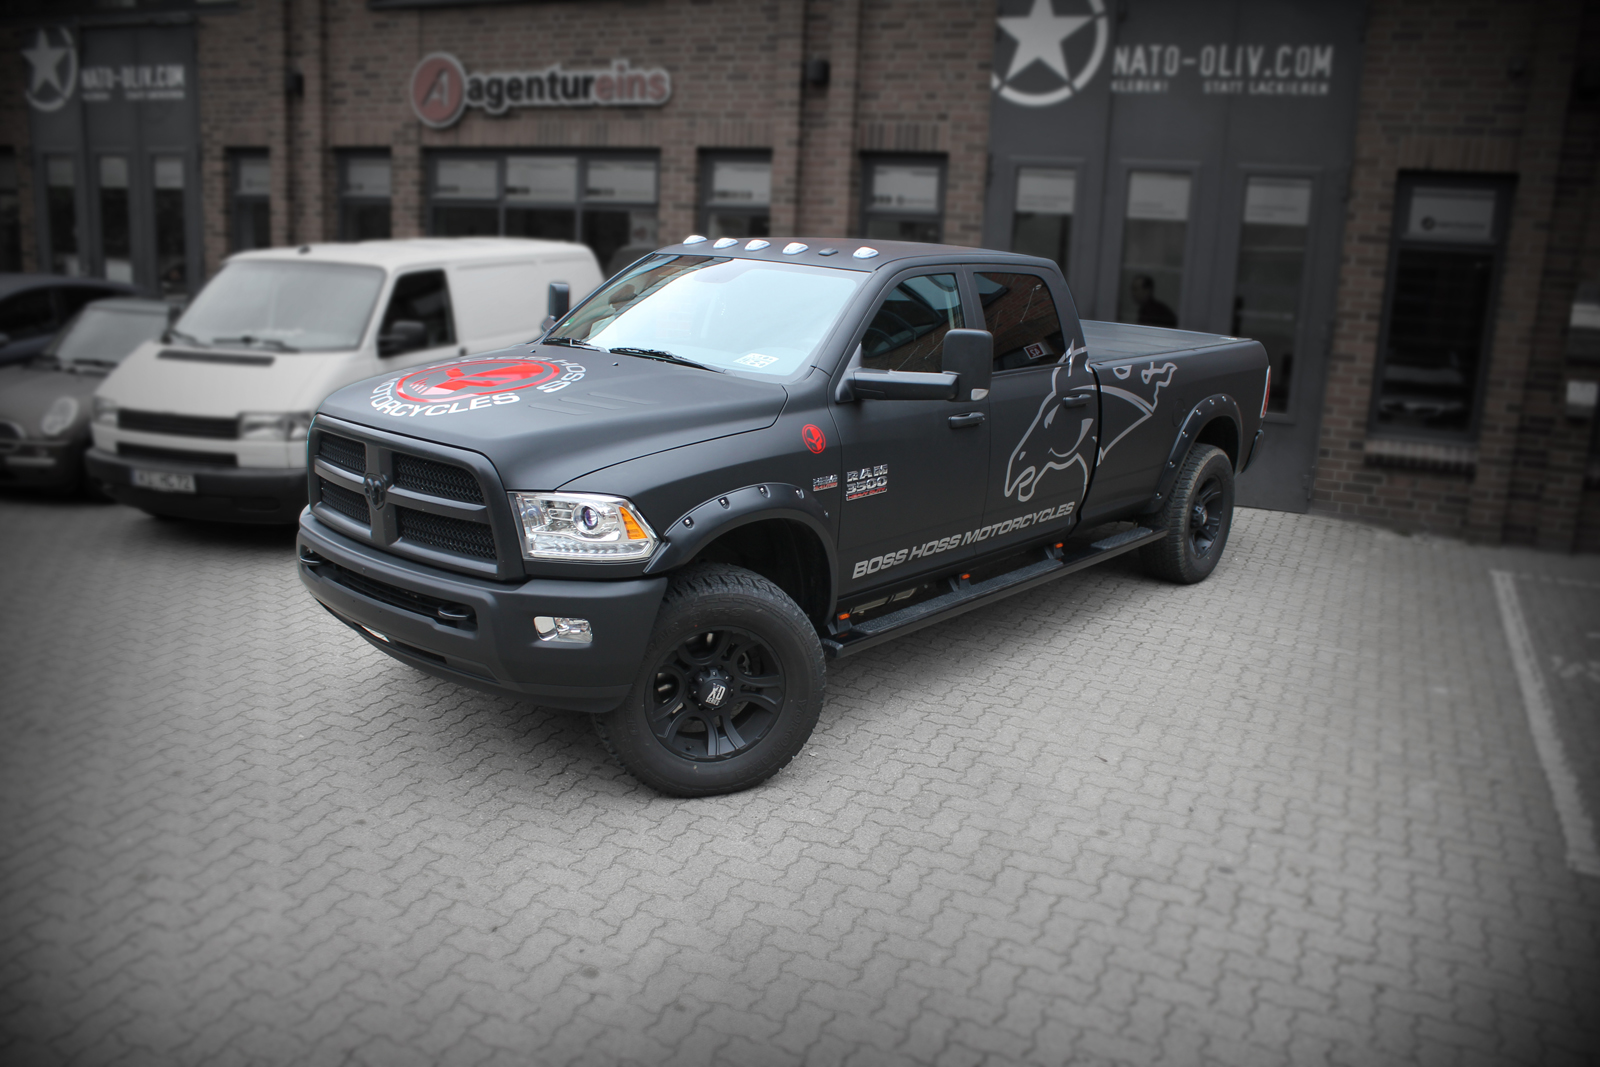 Dodge Ram Car-Wrapping mit Folie in schwarz matt und Branding von Boss Hoss Motorcycles